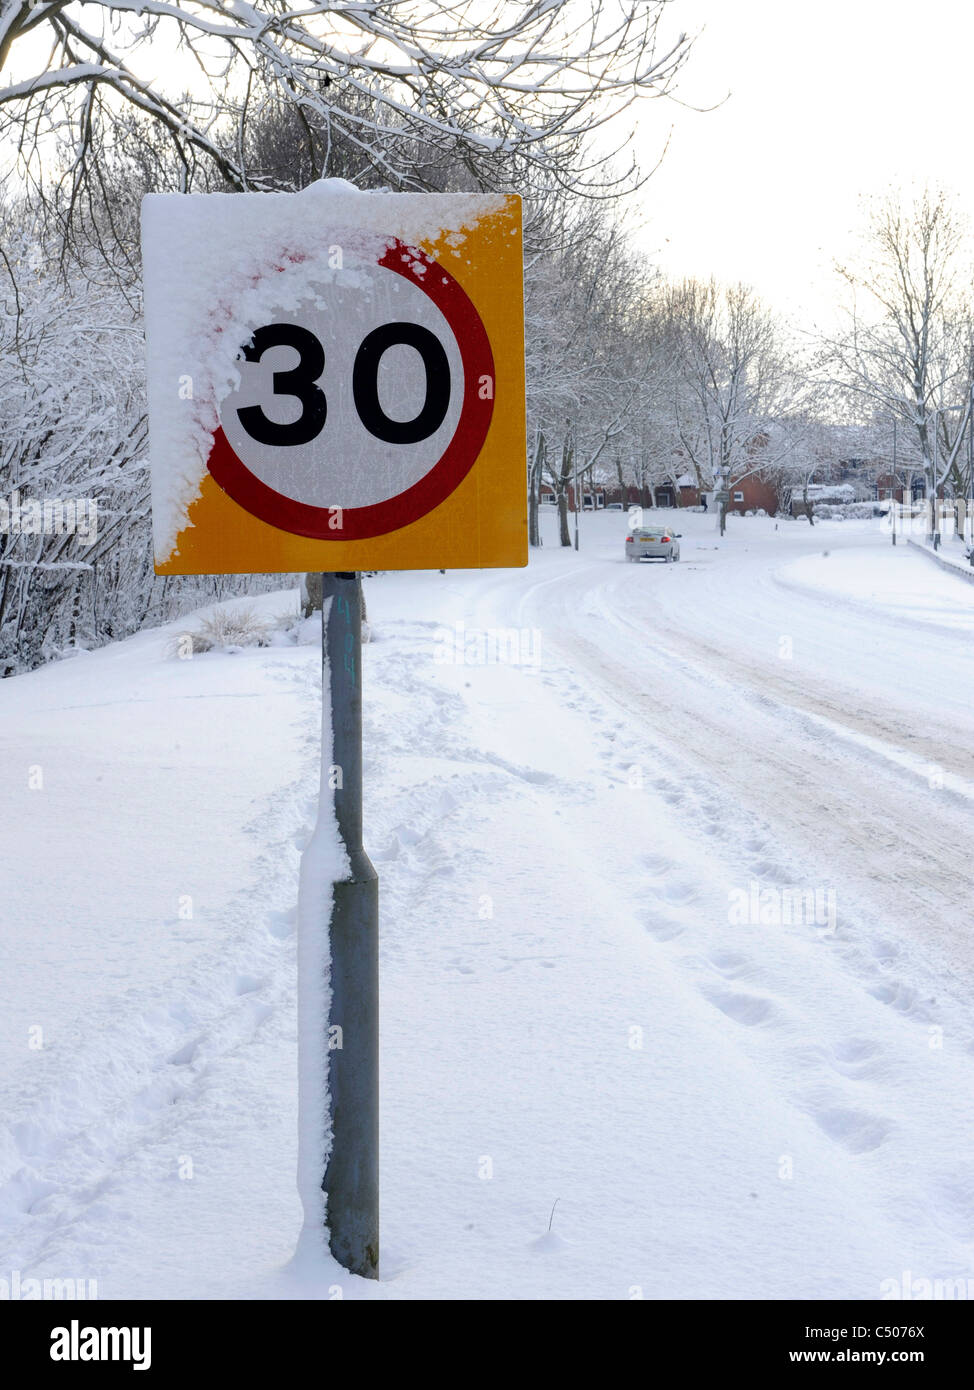 A snow covered speed limit sign. - Stock Image